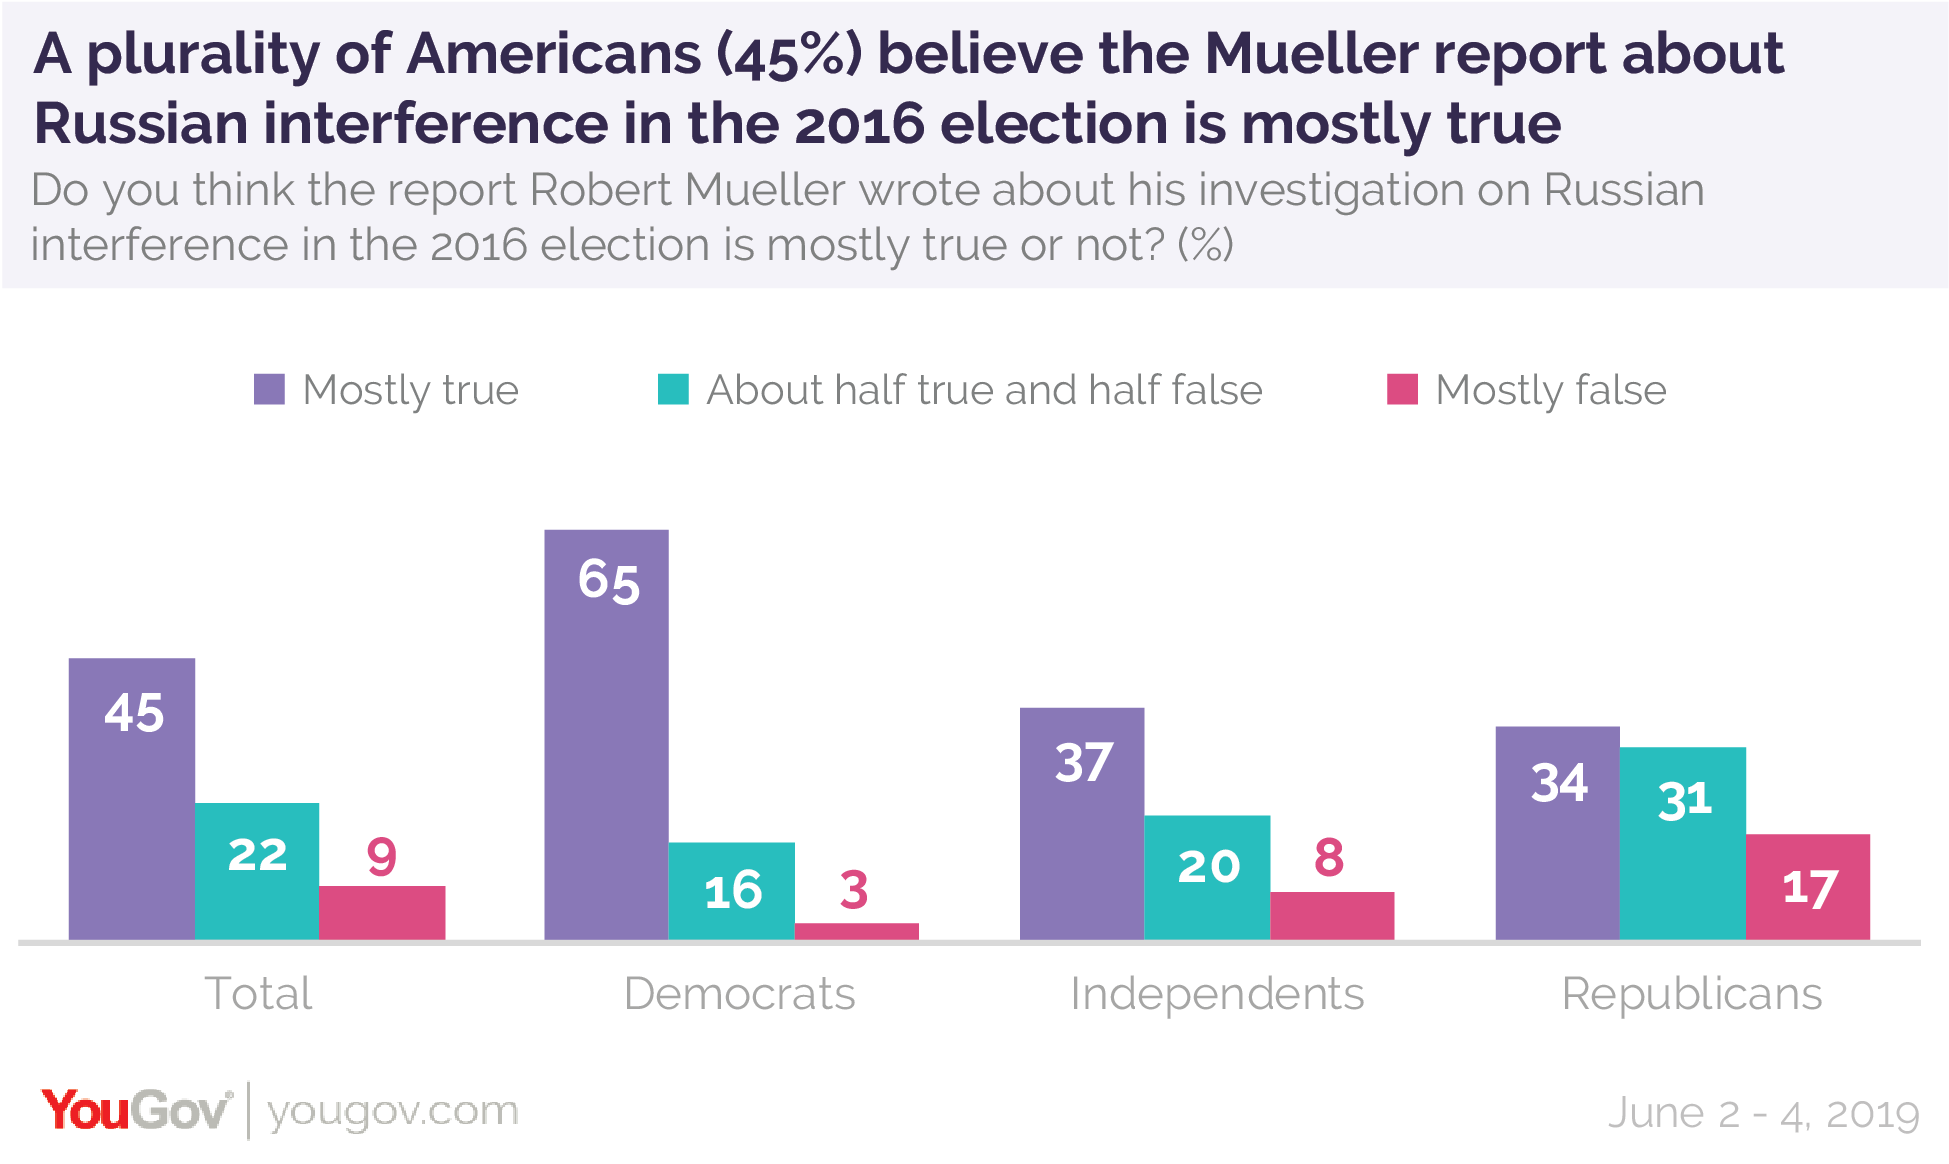 A plurality of Americans believe the Mueller report about Russia interference in the 2016 elections is mostly true